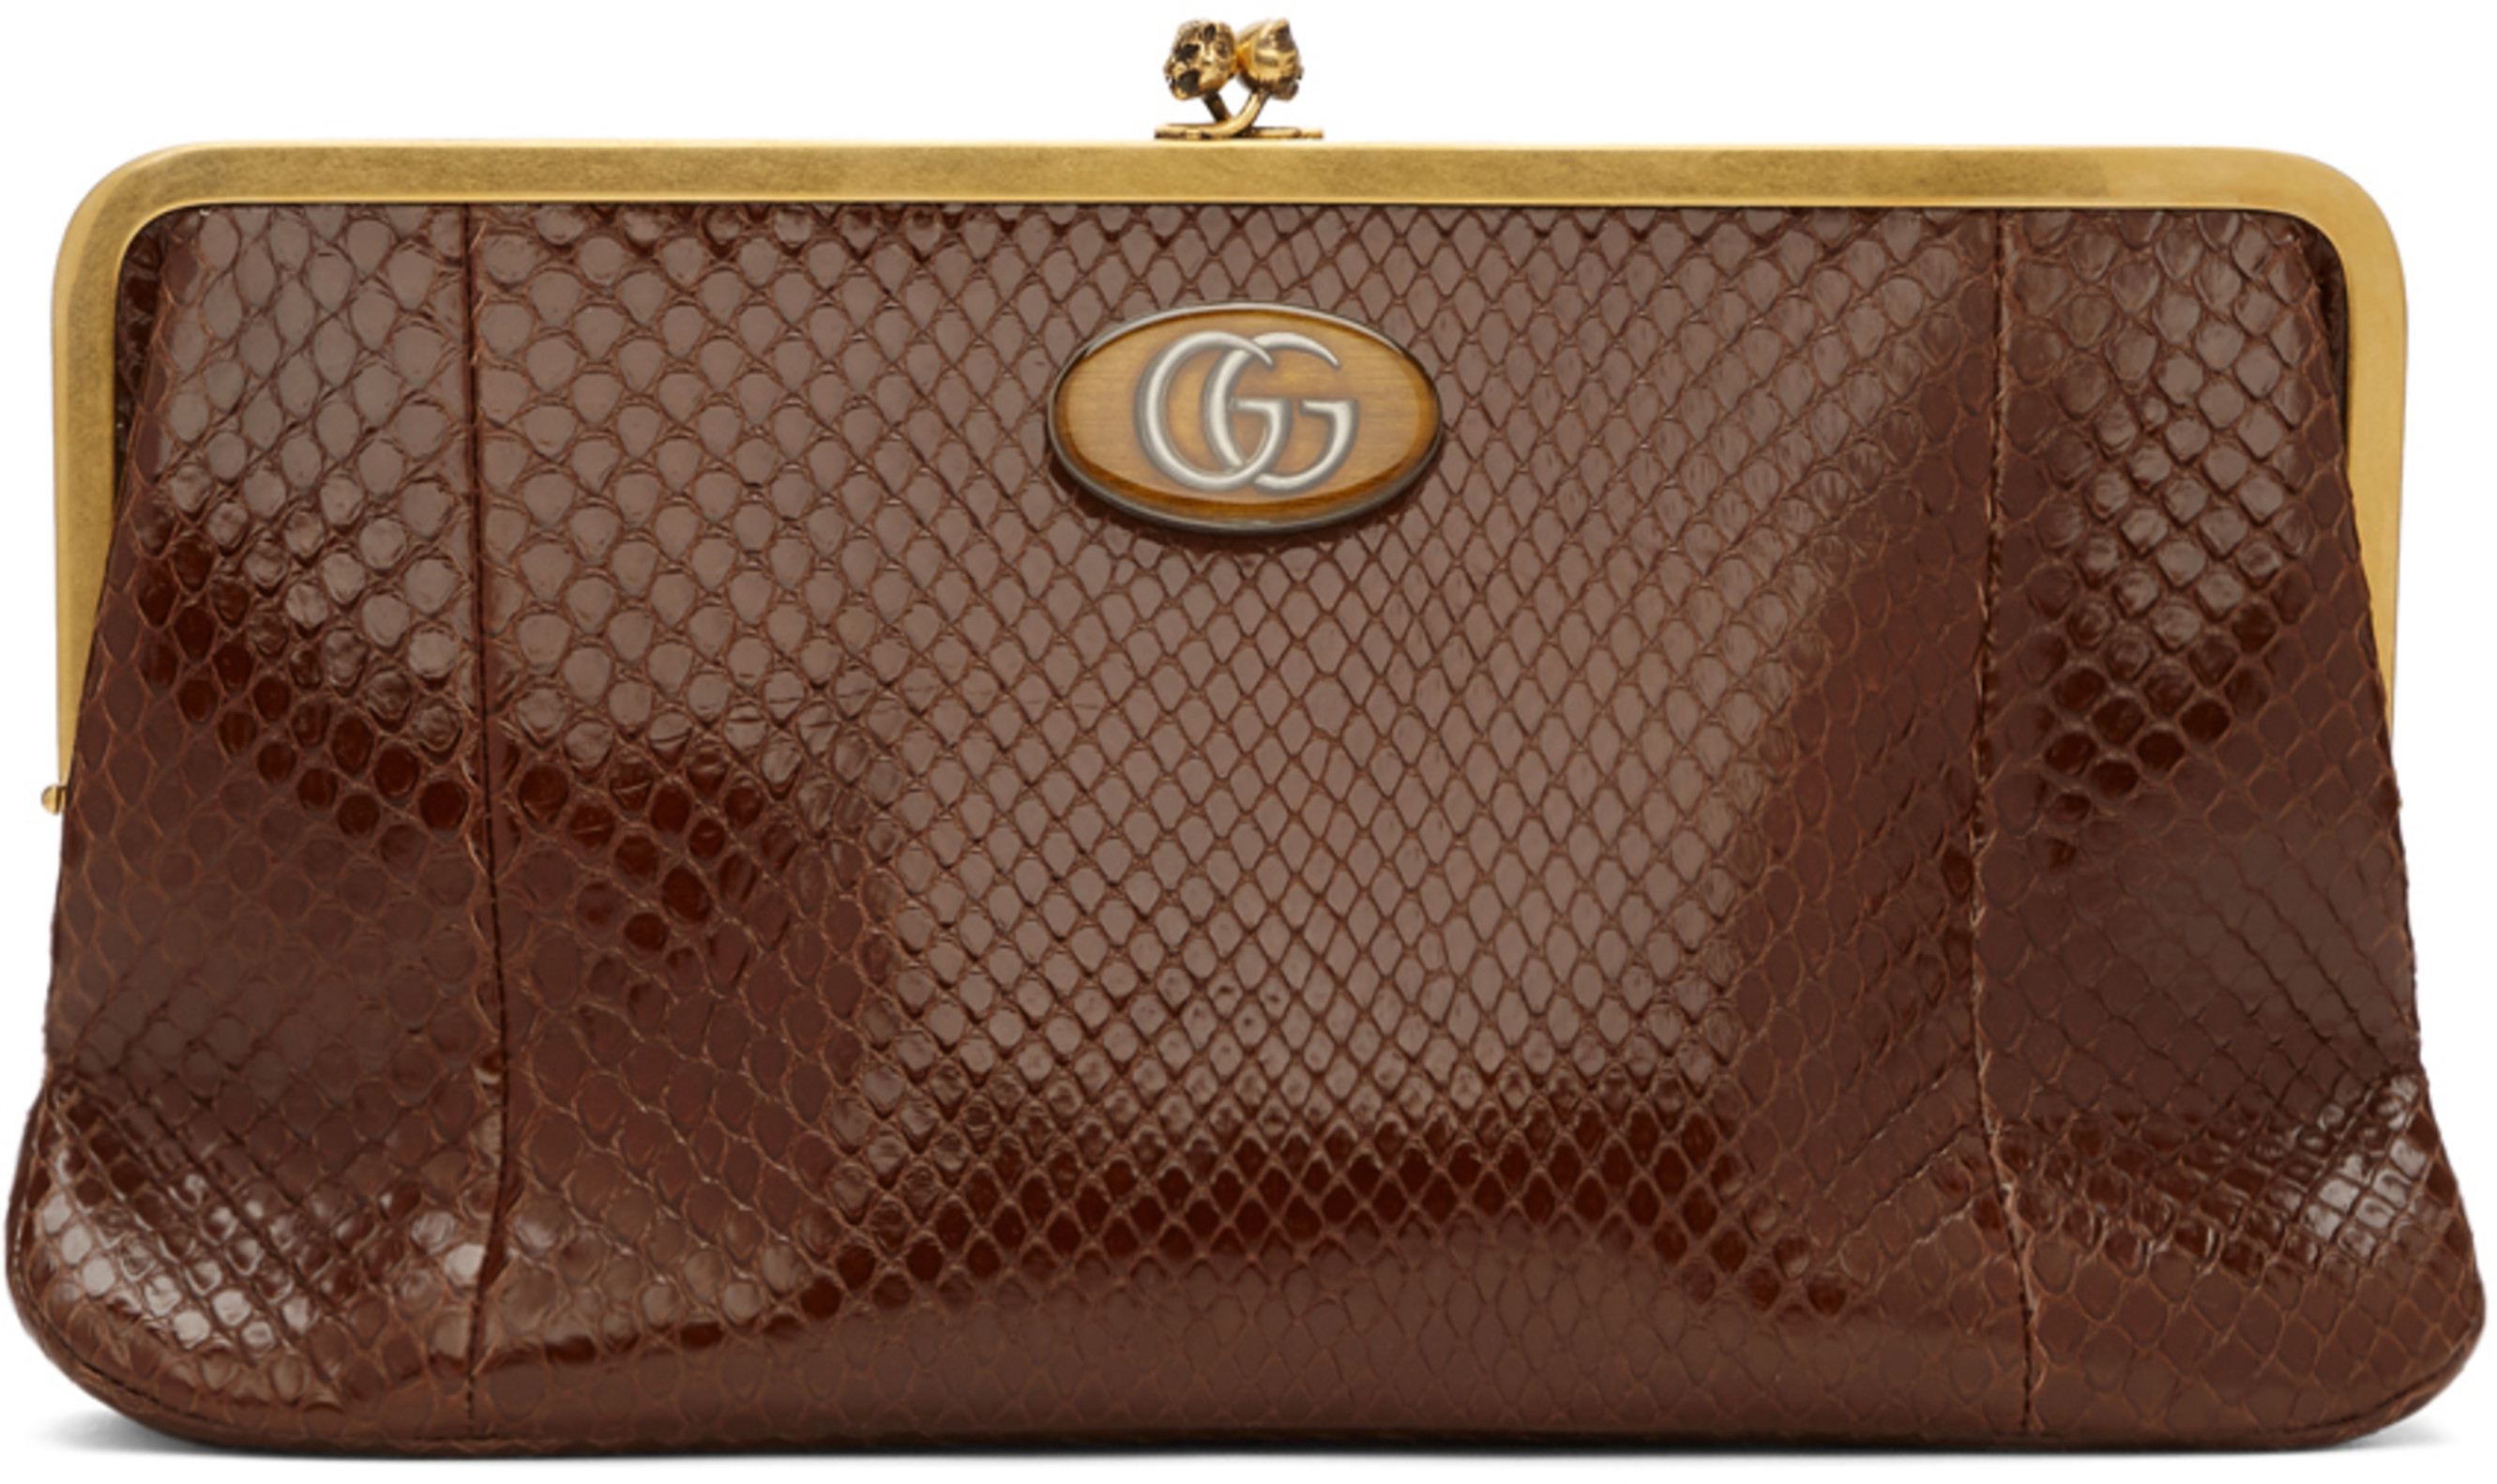 12f952a8fca Gucci bags for Women